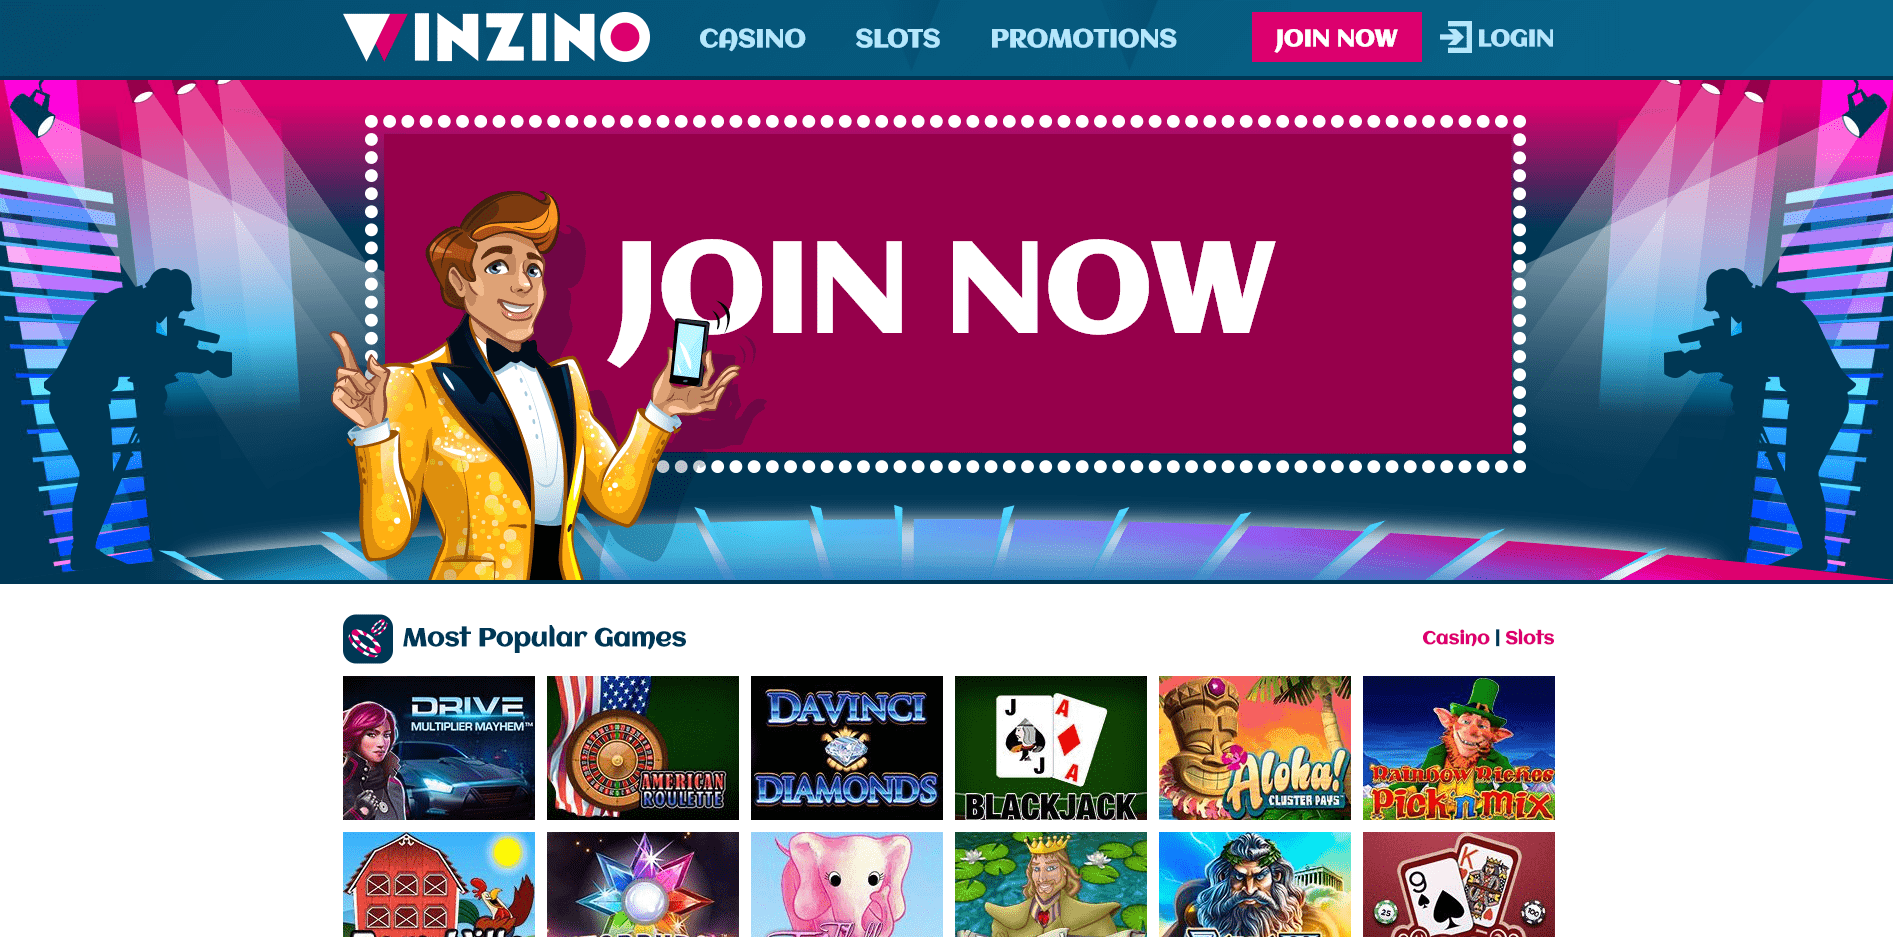 Winzino Casino Reviews